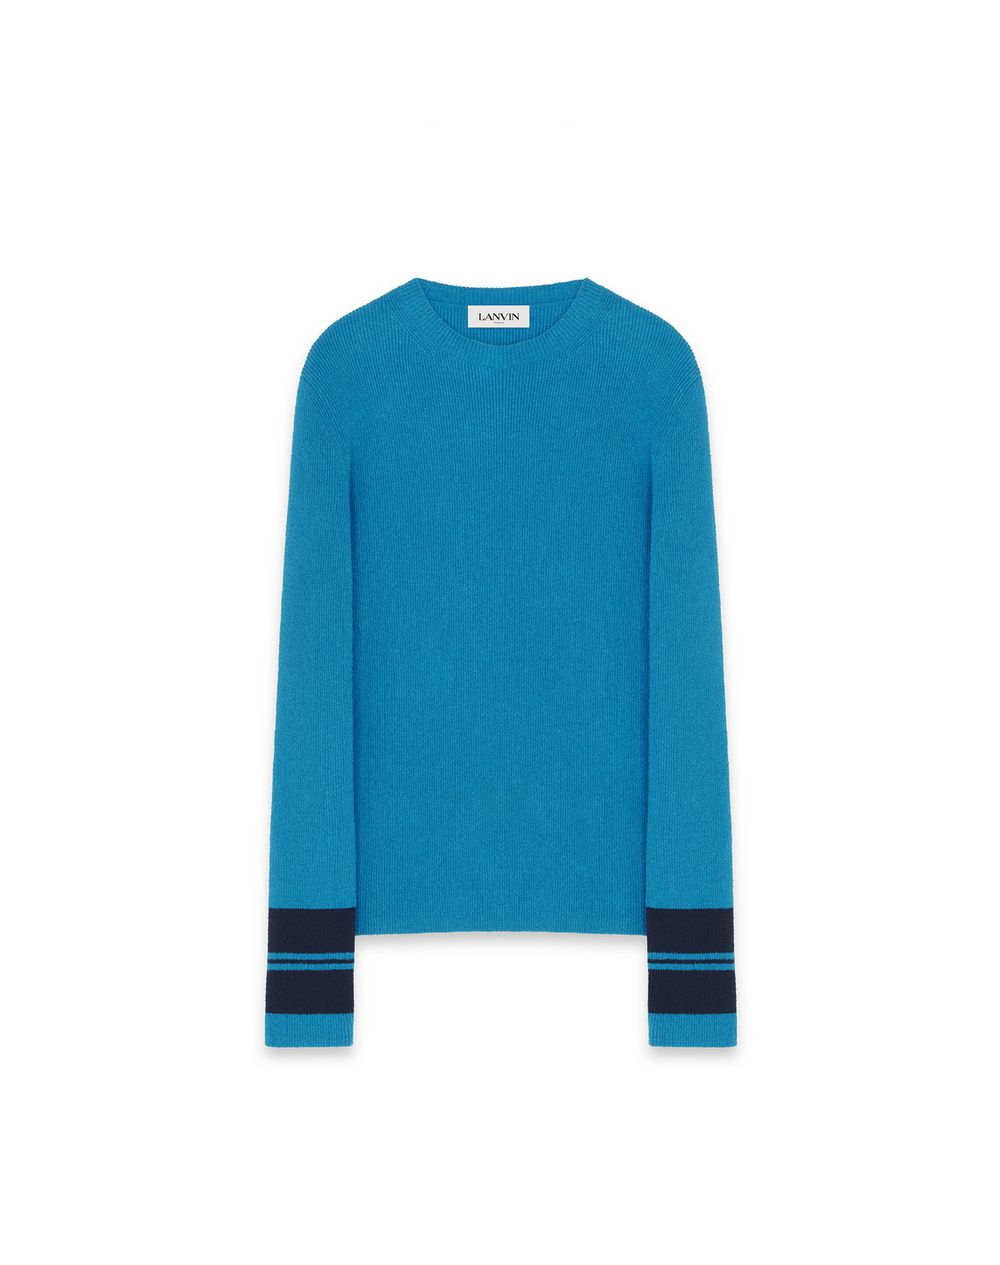 TERRY CLOTH JUMPER - Lanvin